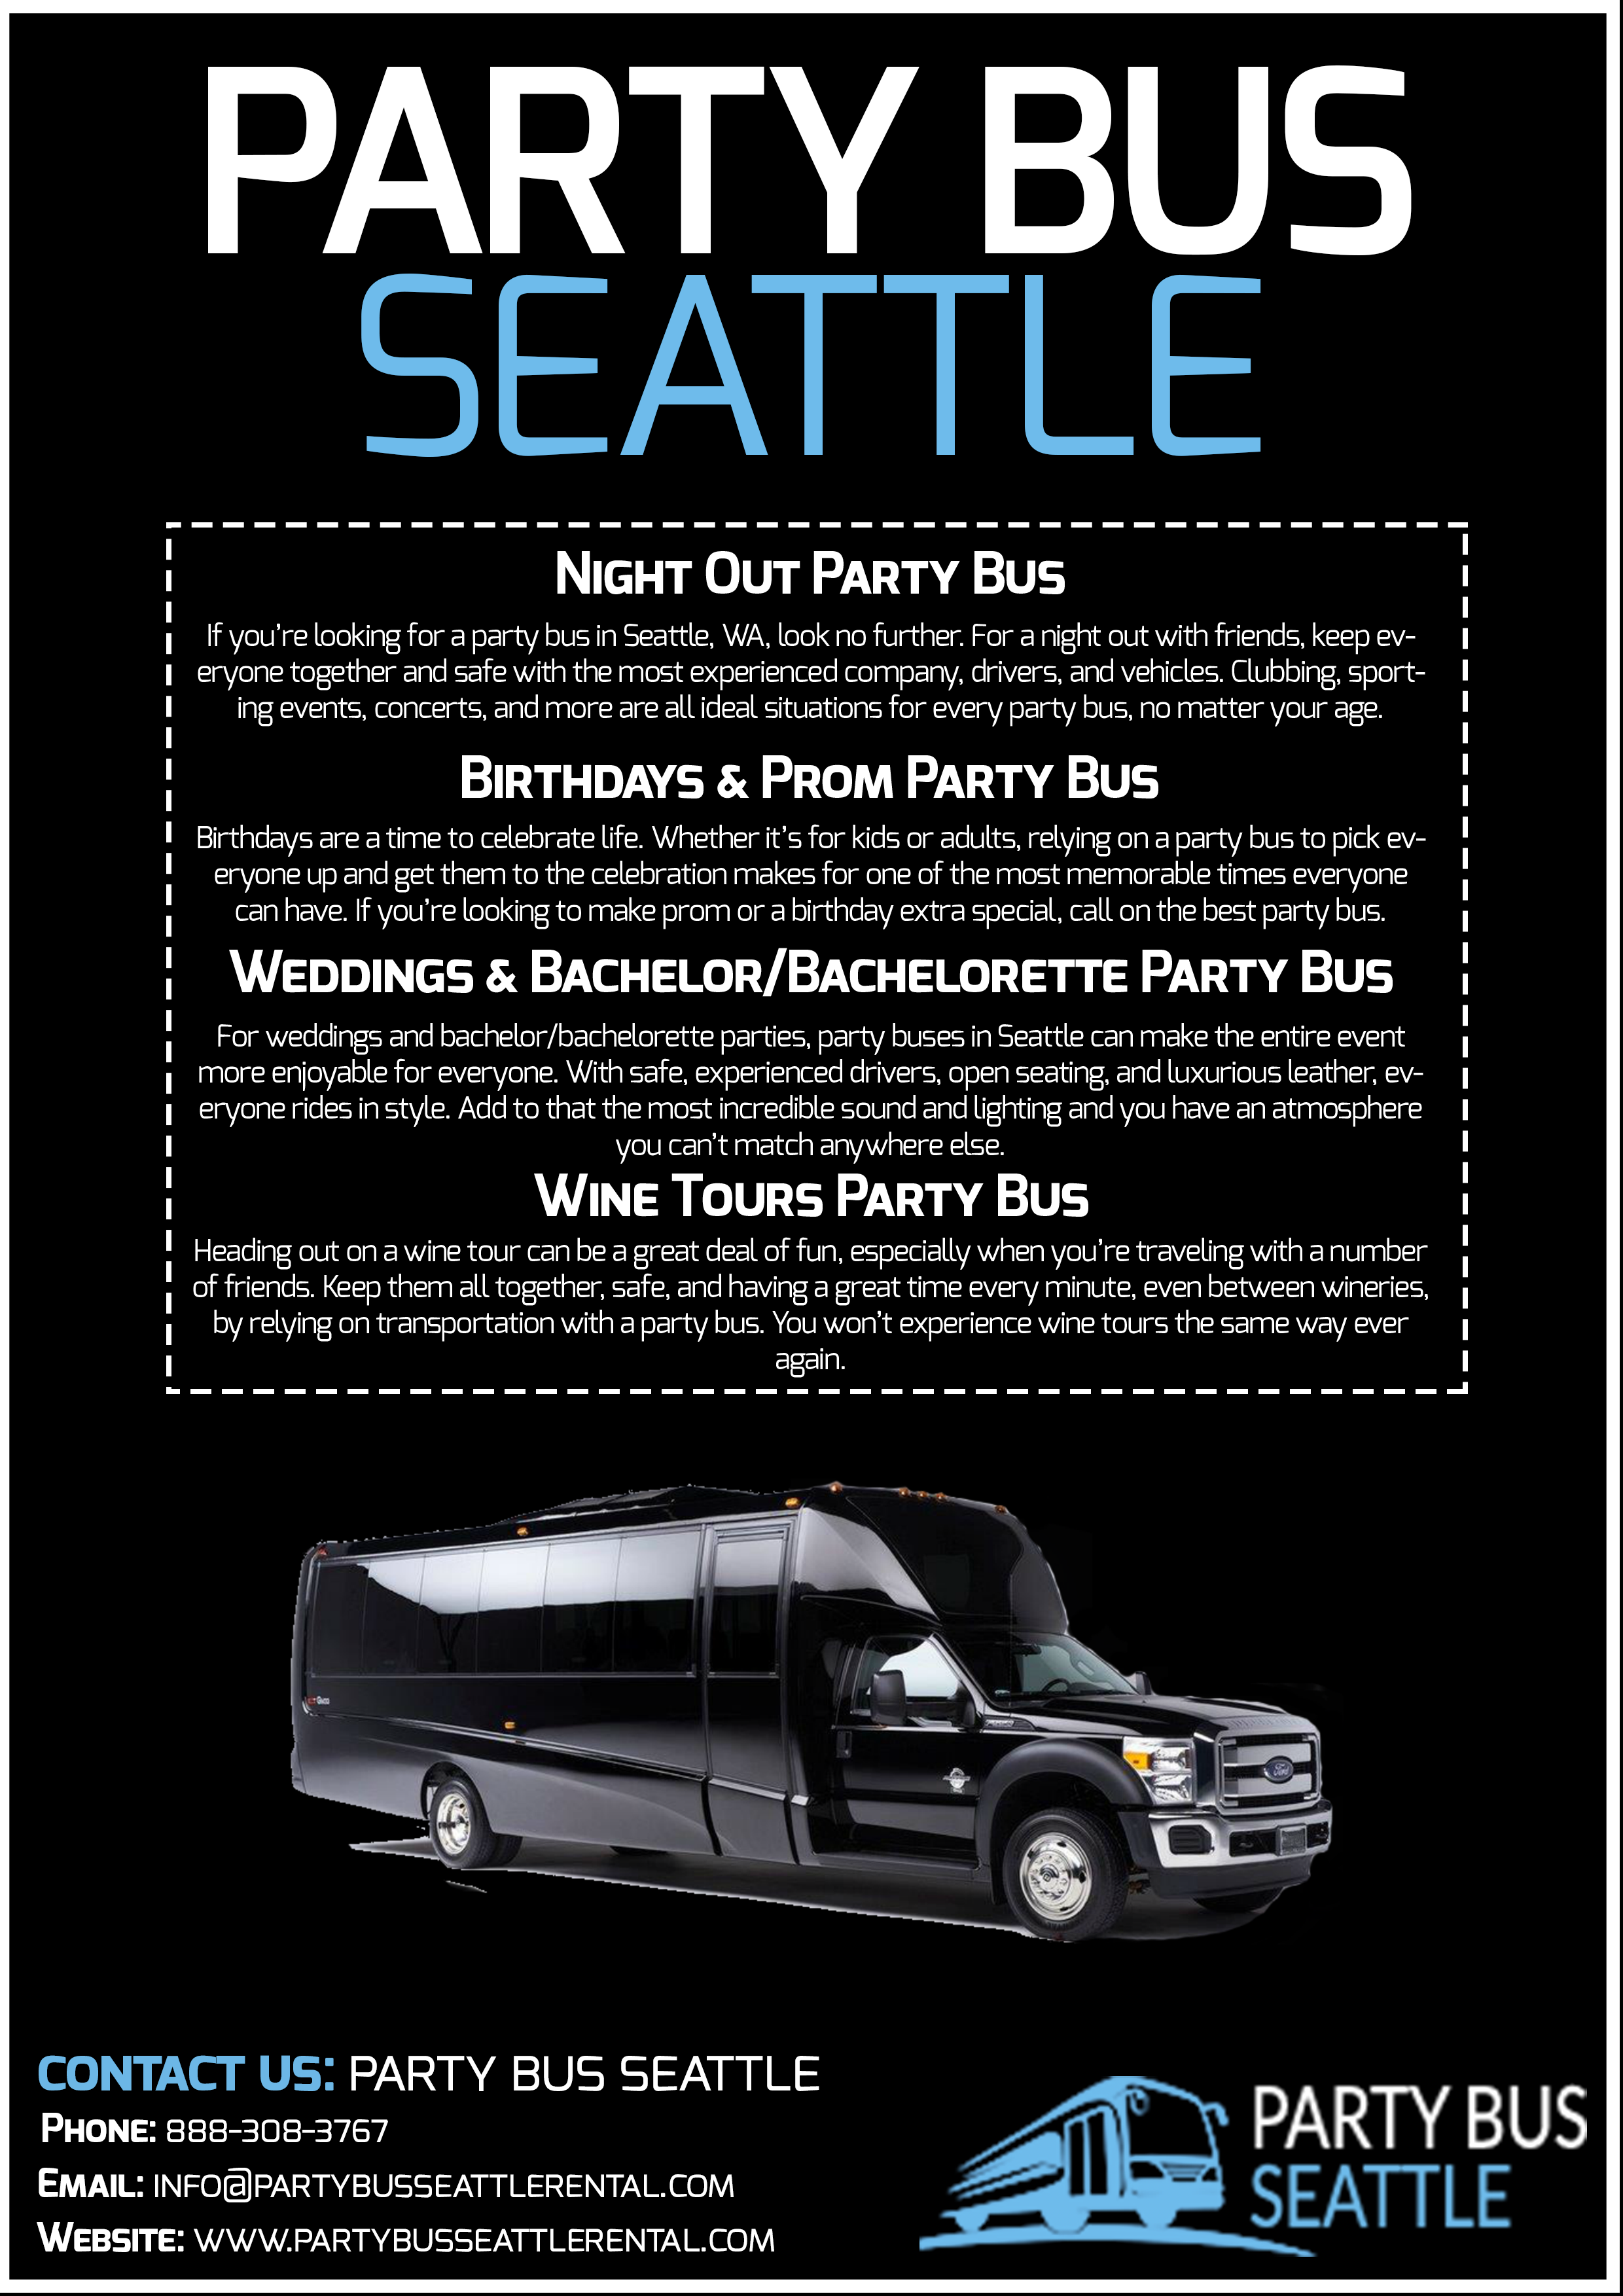 charter bus rental seattle We offer charter bus rental service in